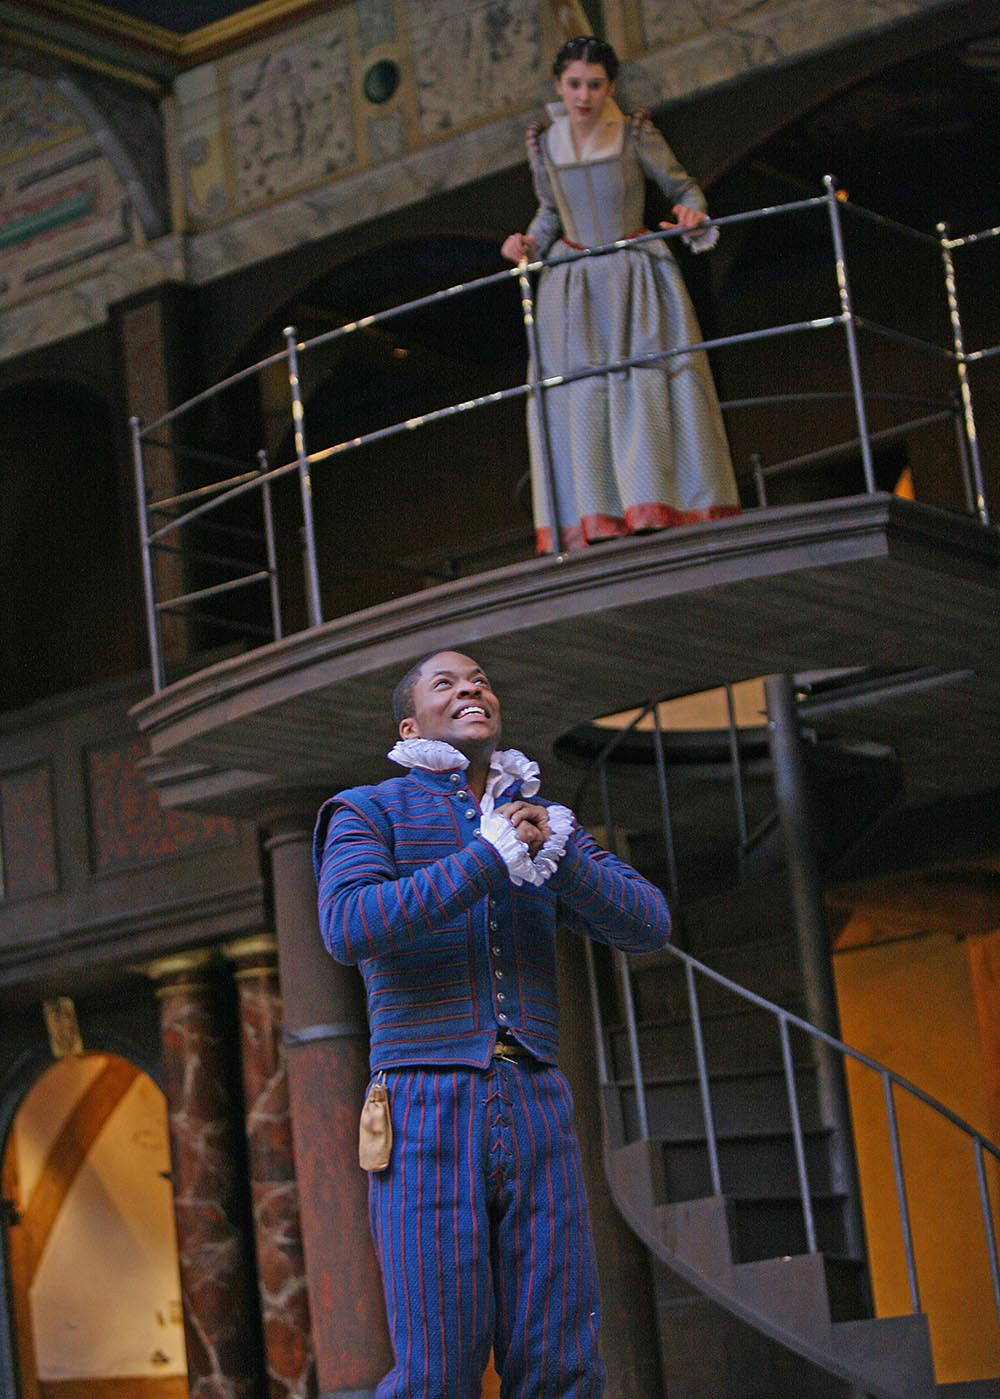 A young woman watches from a balcony as a young man clutches his hands to his chest, besotted.